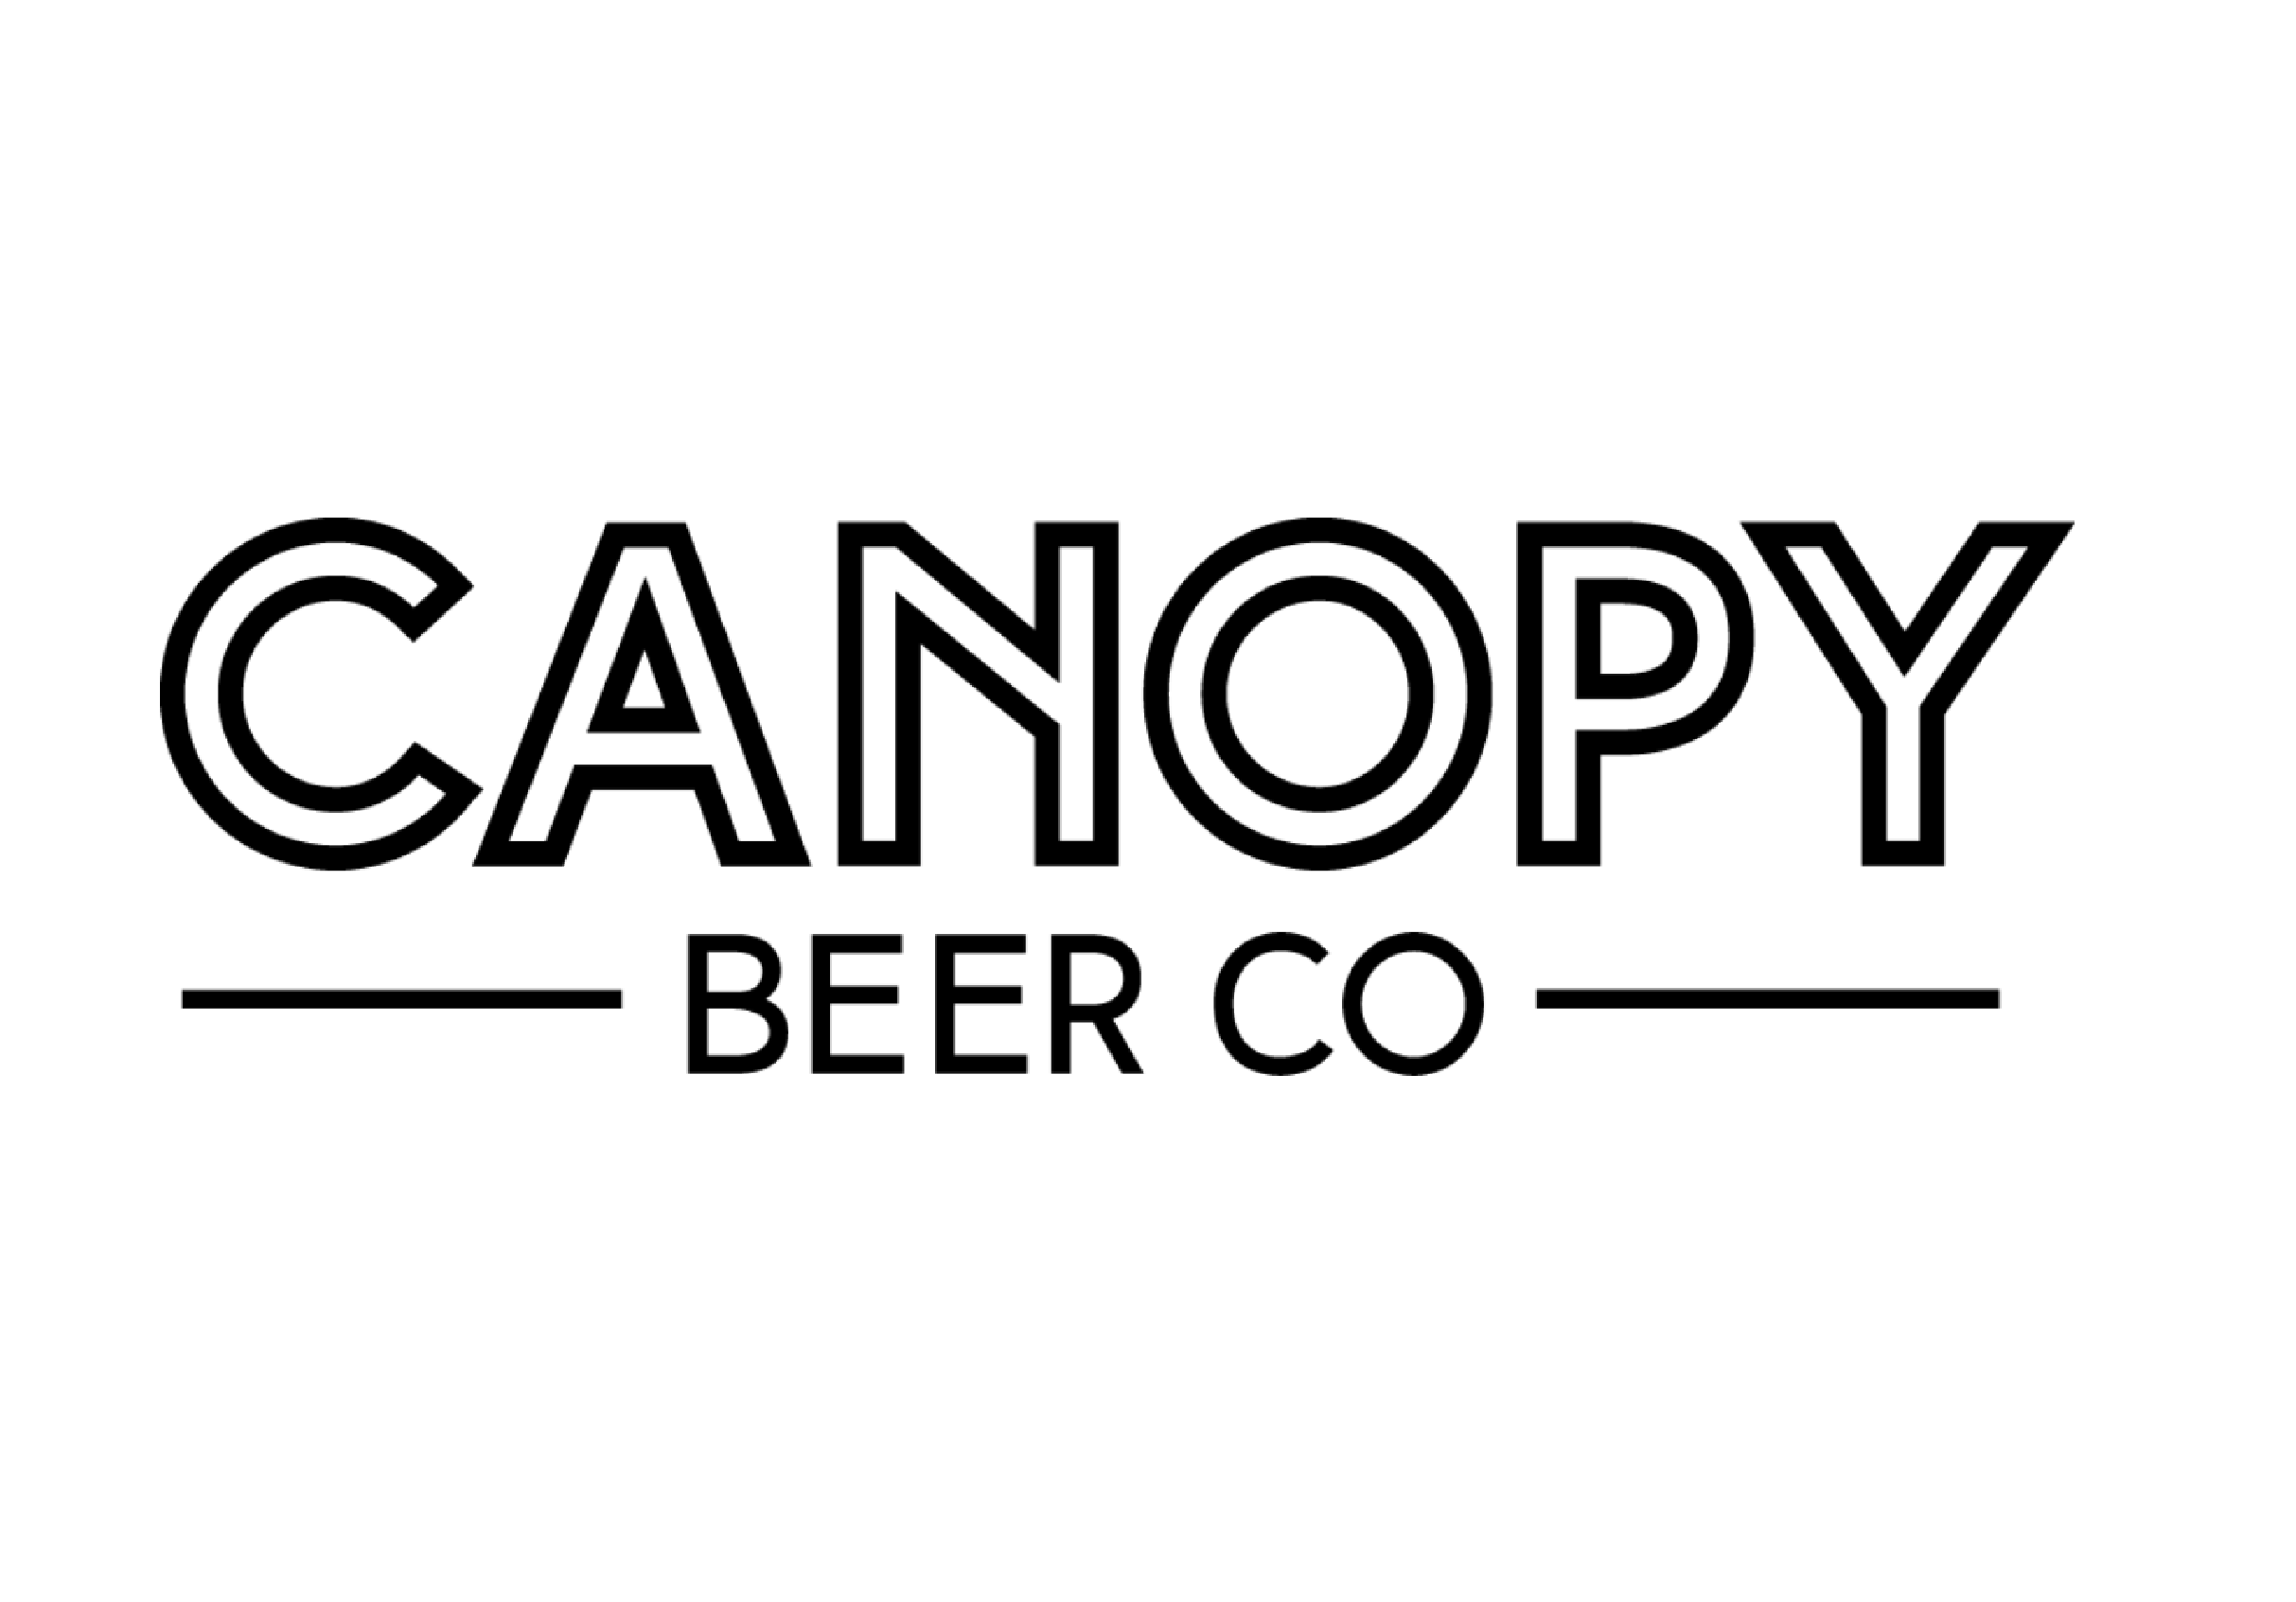 10% off online at  shop.canopybeer.com  with  promo code*